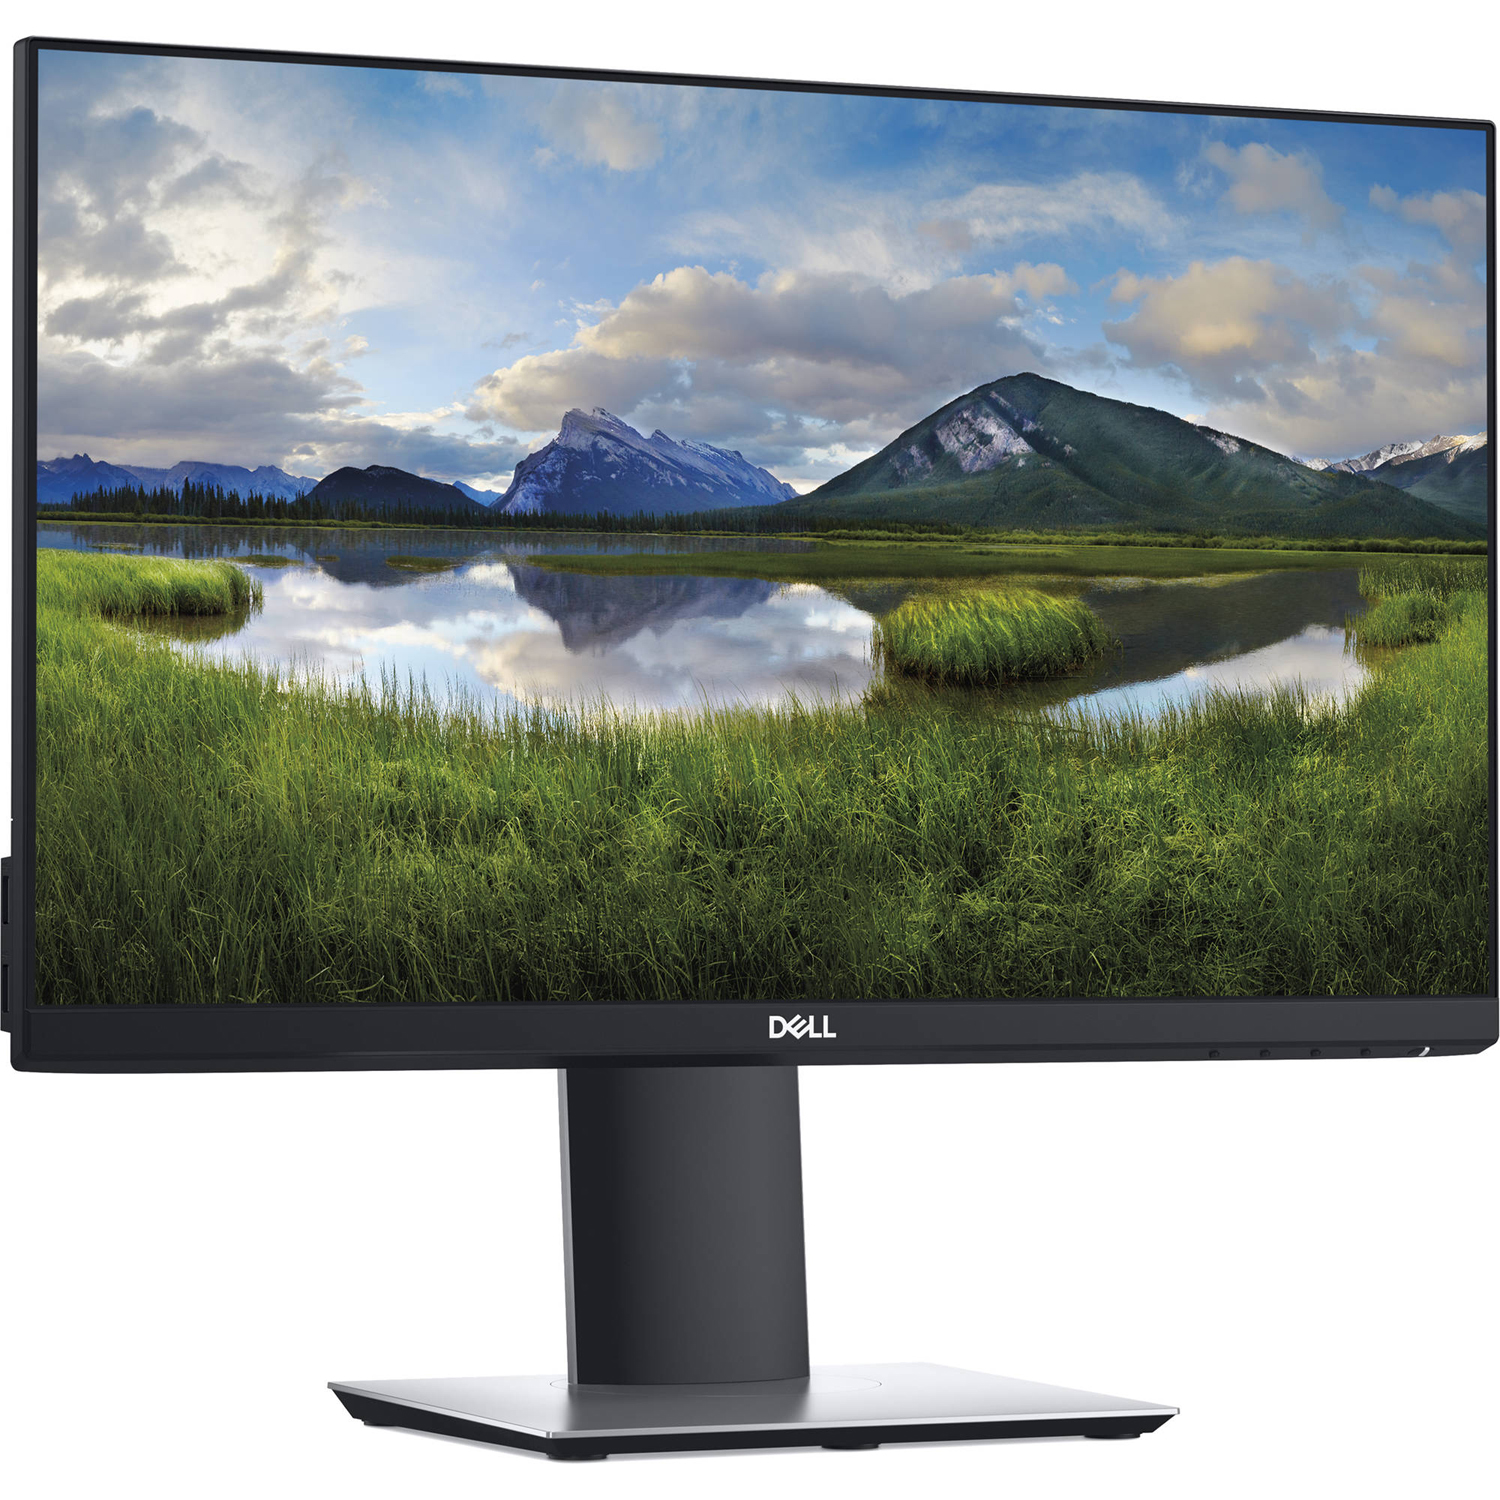 DELL P2219H 21.5IN 1920X1080-FHD Monitor